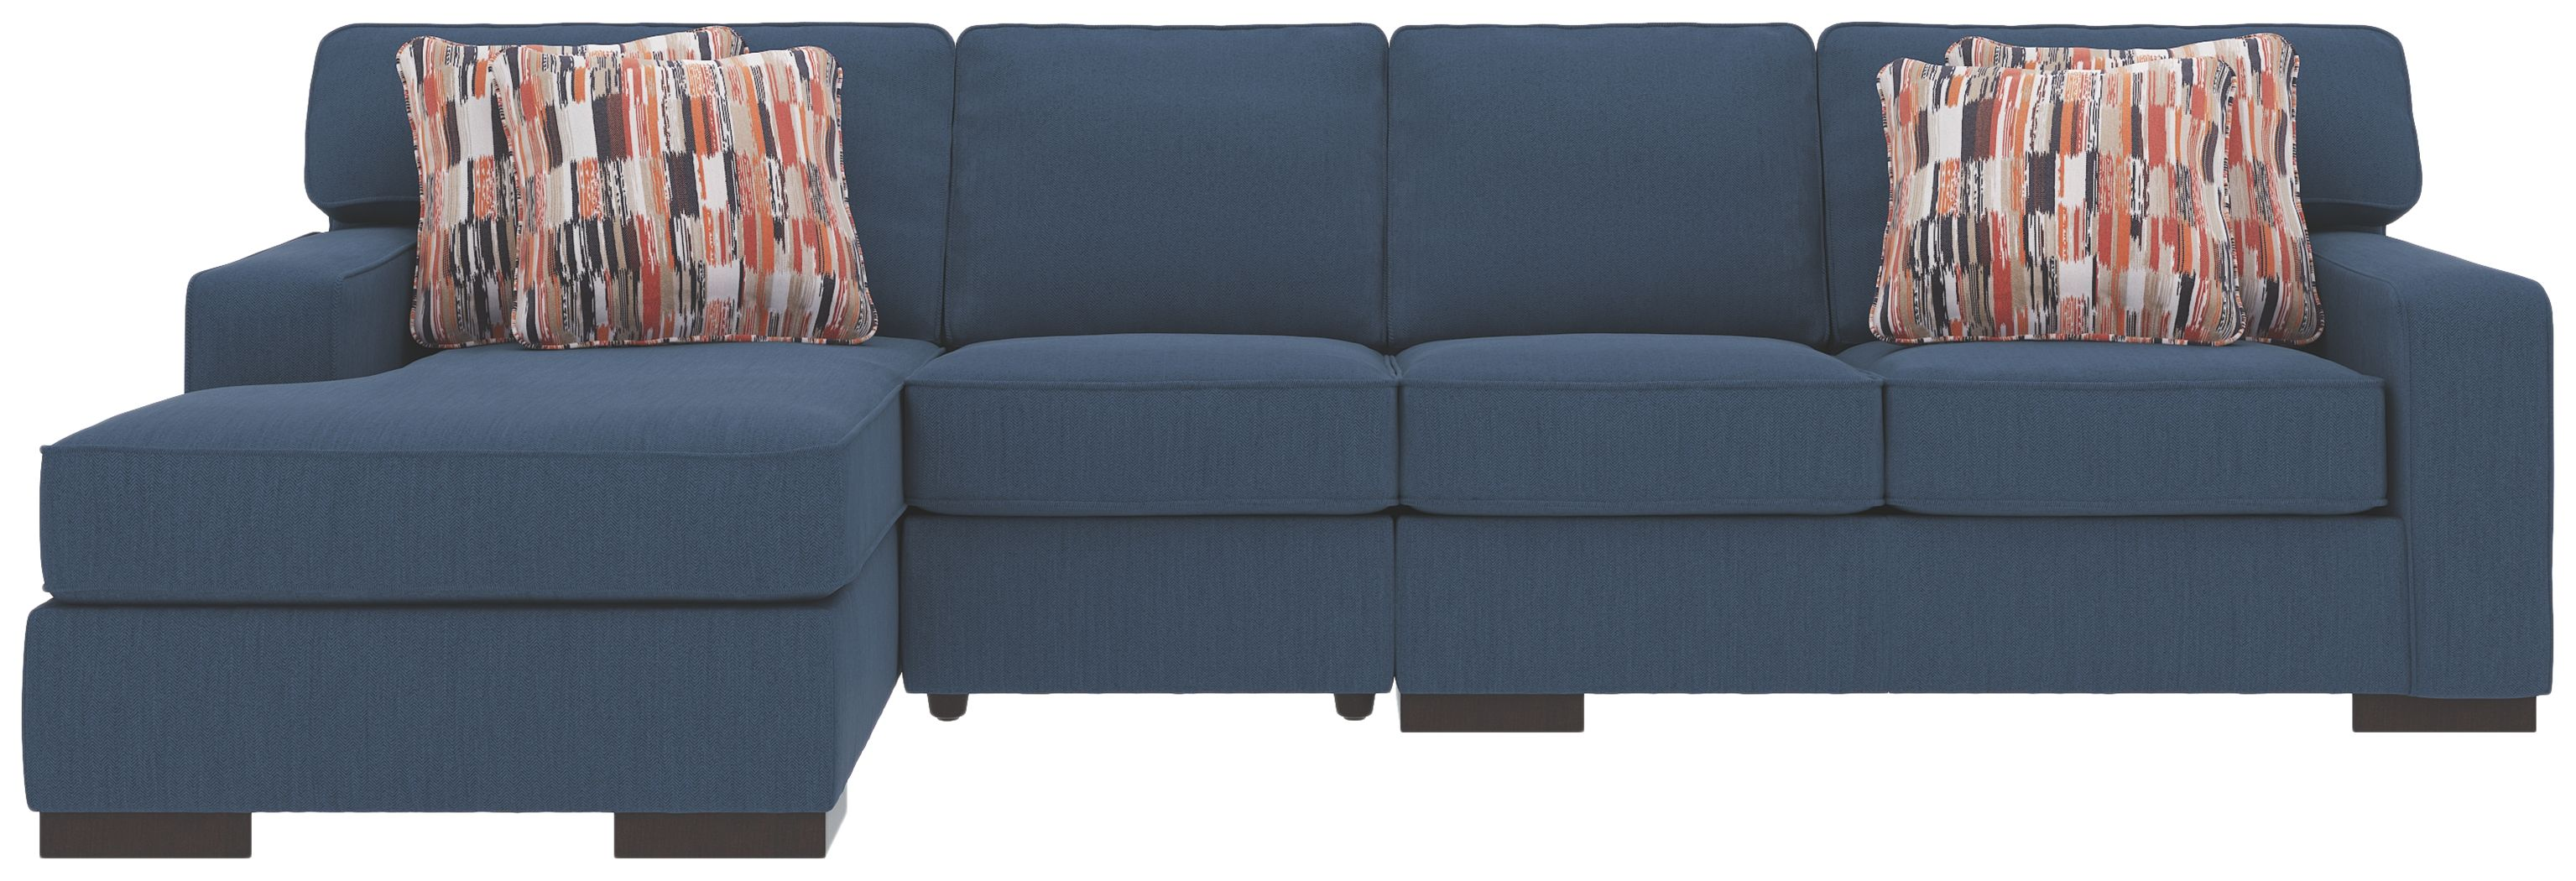 Miraculous Ashlor Nuvella 3 Piece Sectional And Pillows Indigo Ocoug Best Dining Table And Chair Ideas Images Ocougorg